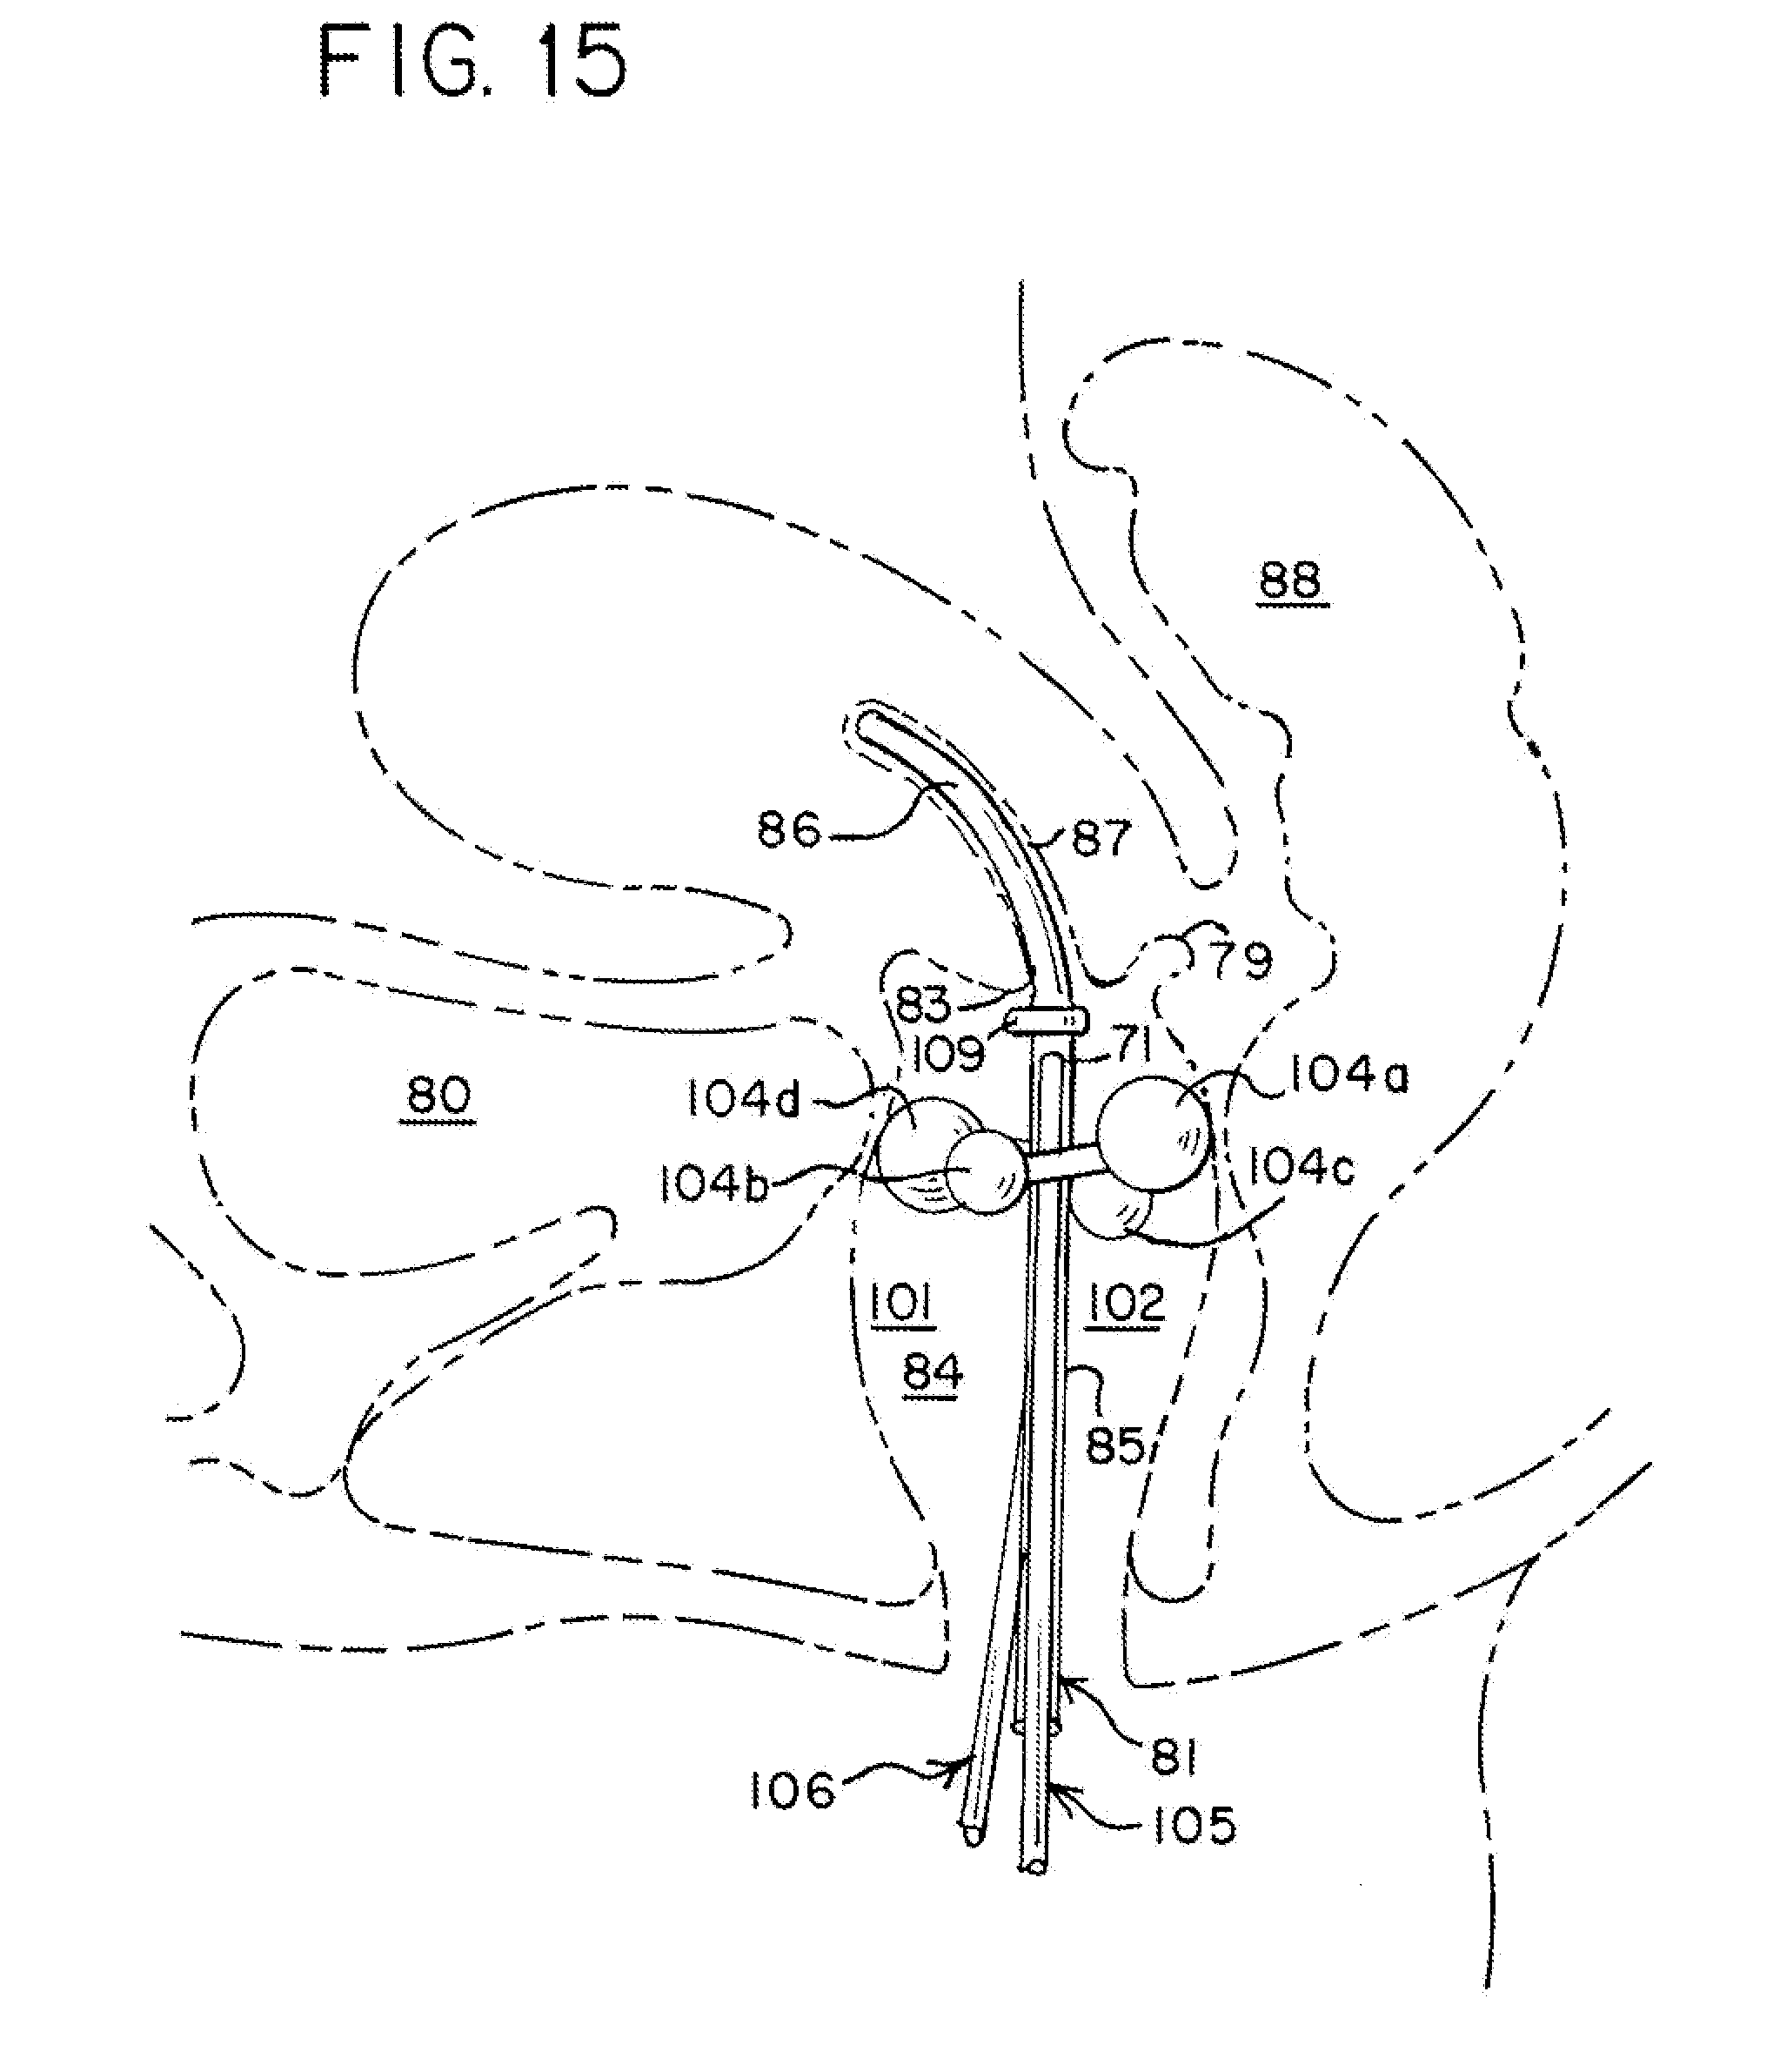 Us20130317276a1 20131128 d00010 patent us20130317276 brachytherapy tandem and ovoid implantation suzuki lt80 carb diagram at aneh